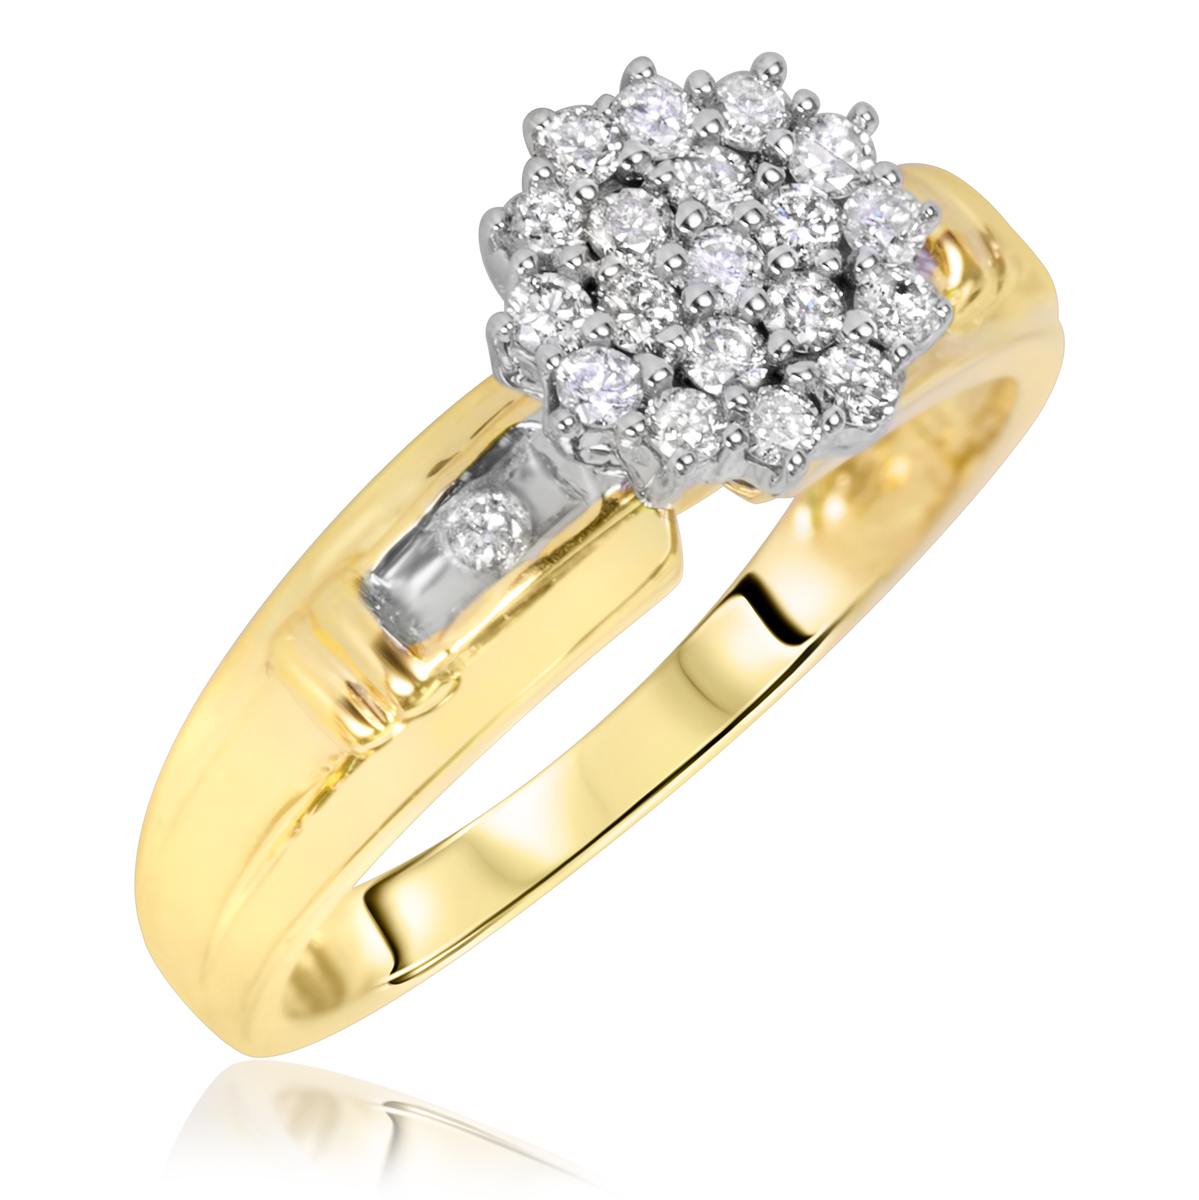 1 3 Carat TW Diamond Womens Engagement Ring 14K Yellow Gold